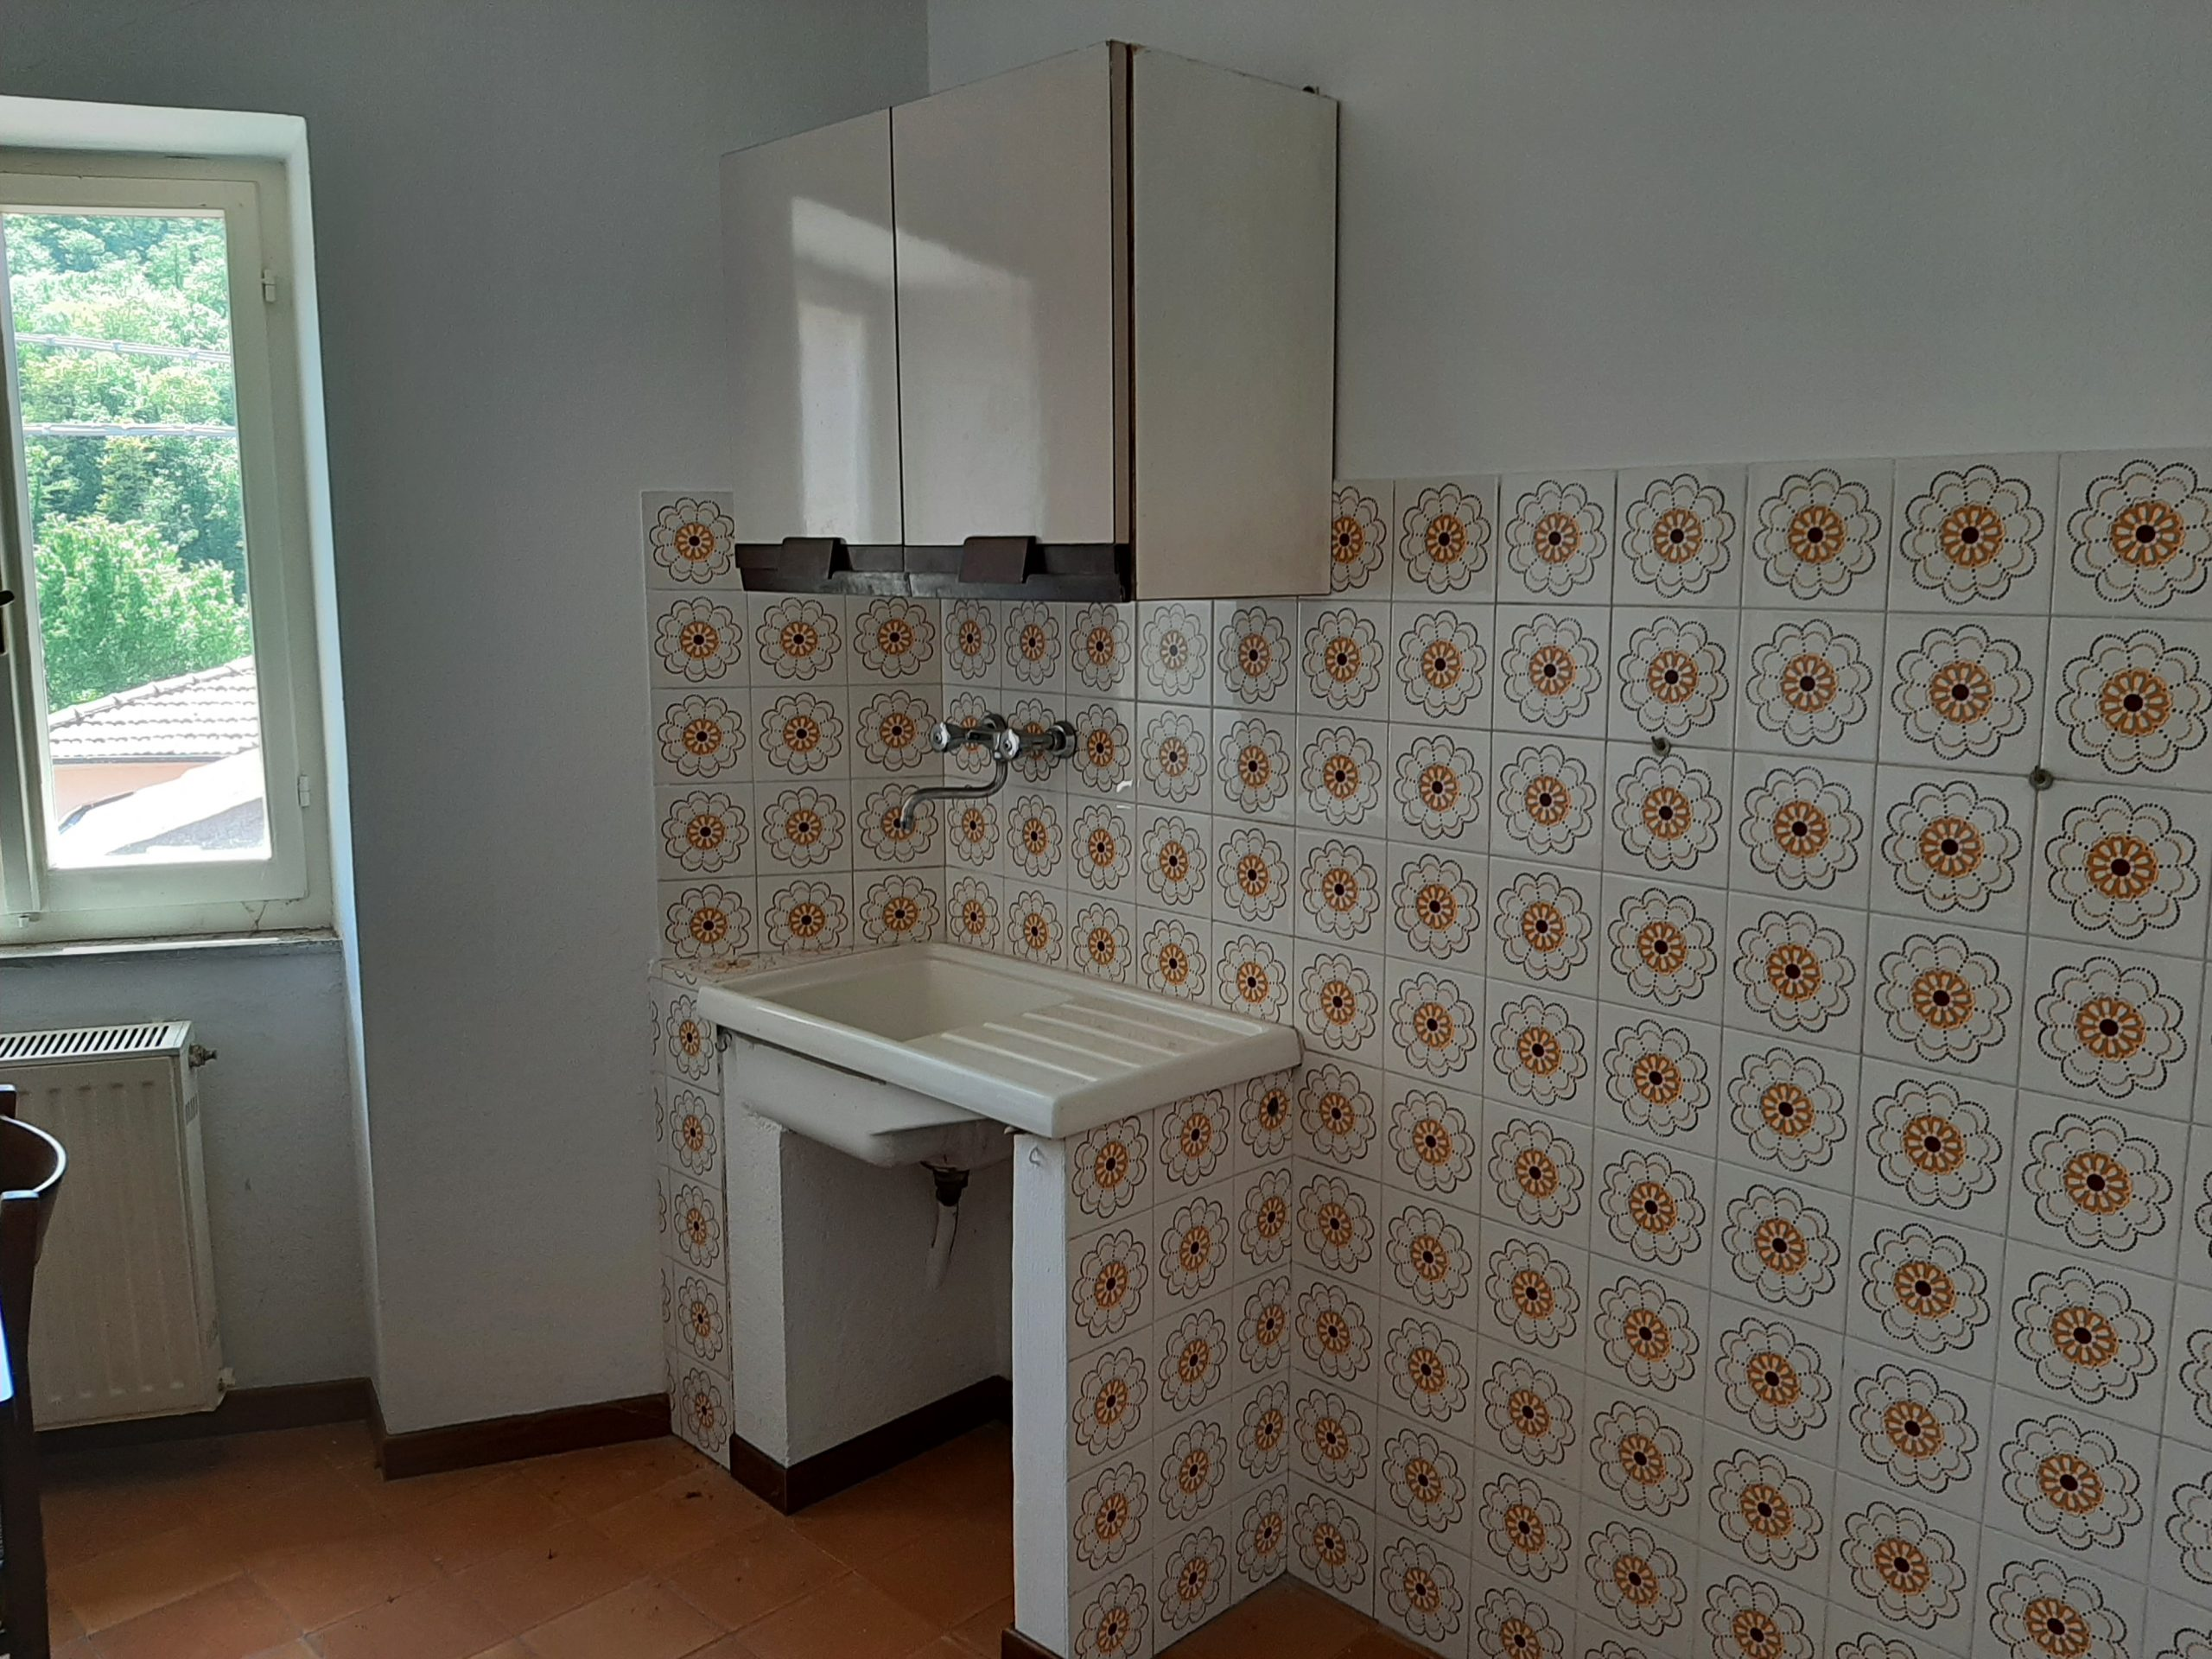 Occasion in Lunigiana: Renovated stone house with garden + Habitable stone house ideal for renting. Ref. 2412